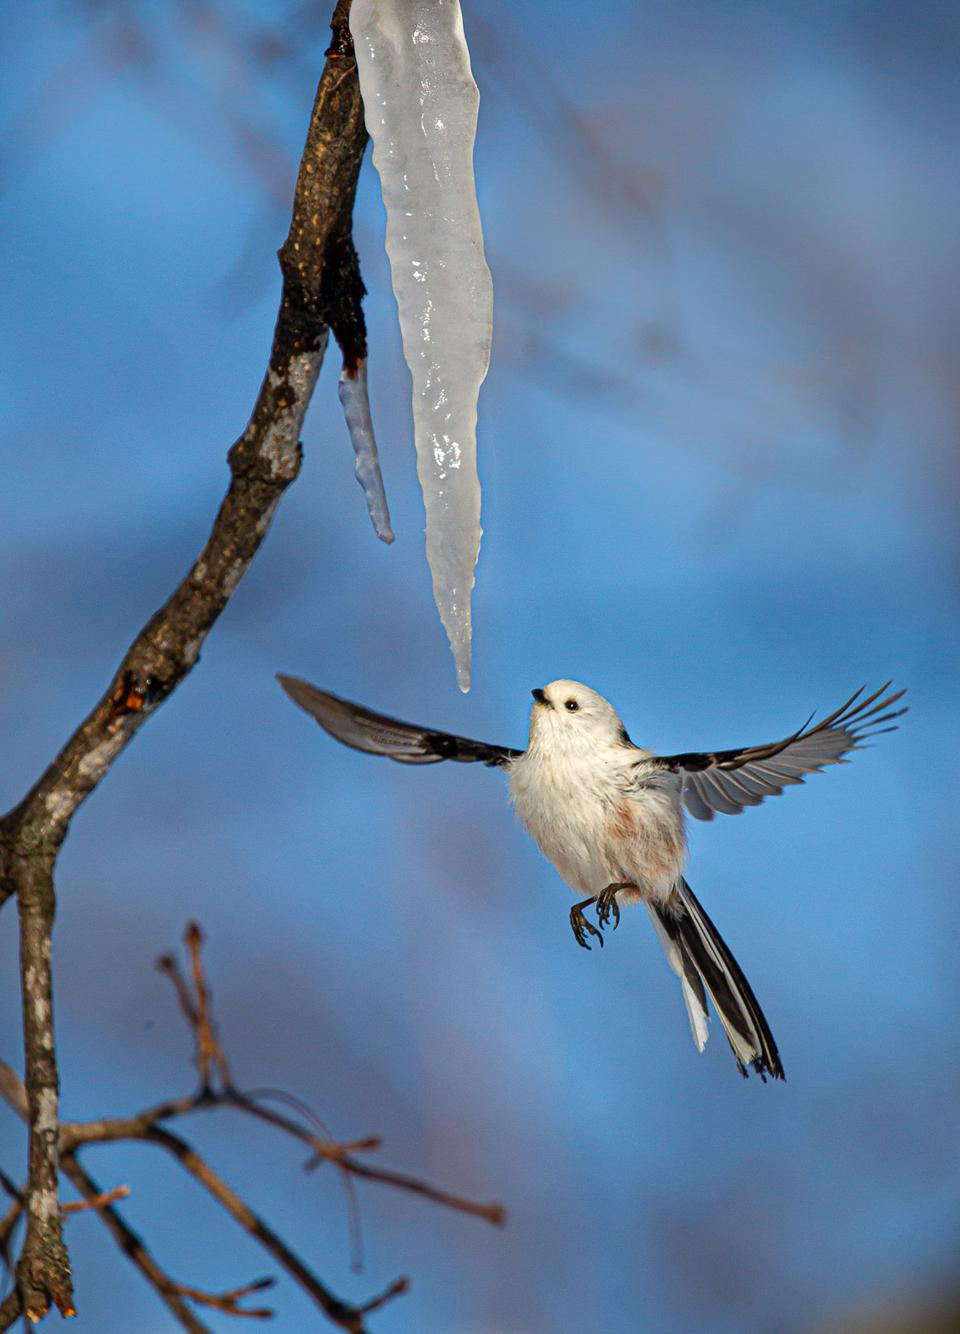 Long-tailed tit bird drinks water dripping from icicles